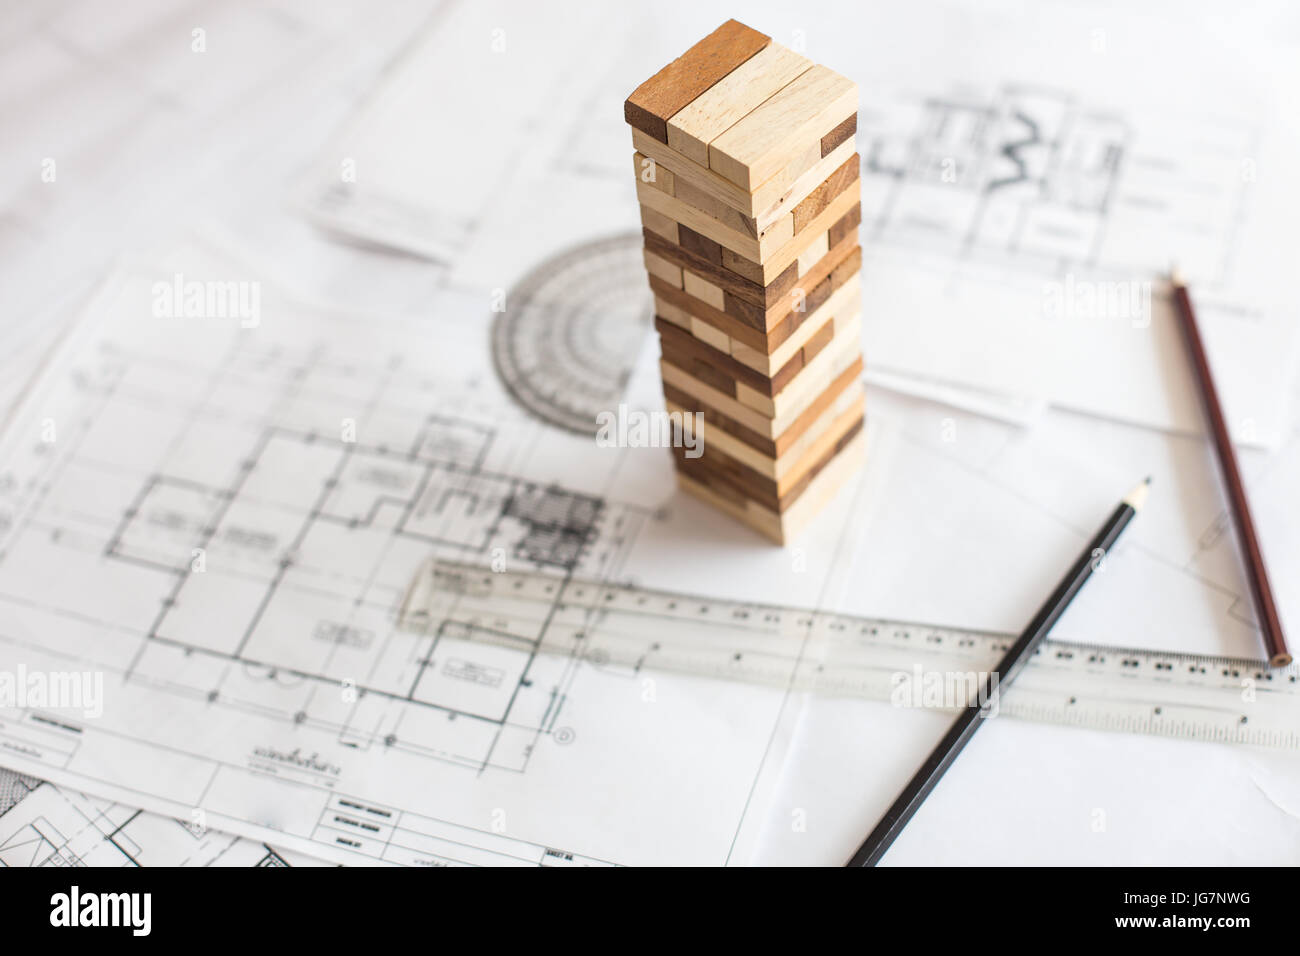 Blueprint wooden block tower planning risk and strategy in stock blueprint wooden block tower planning risk and strategy in business or architectural project malvernweather Image collections